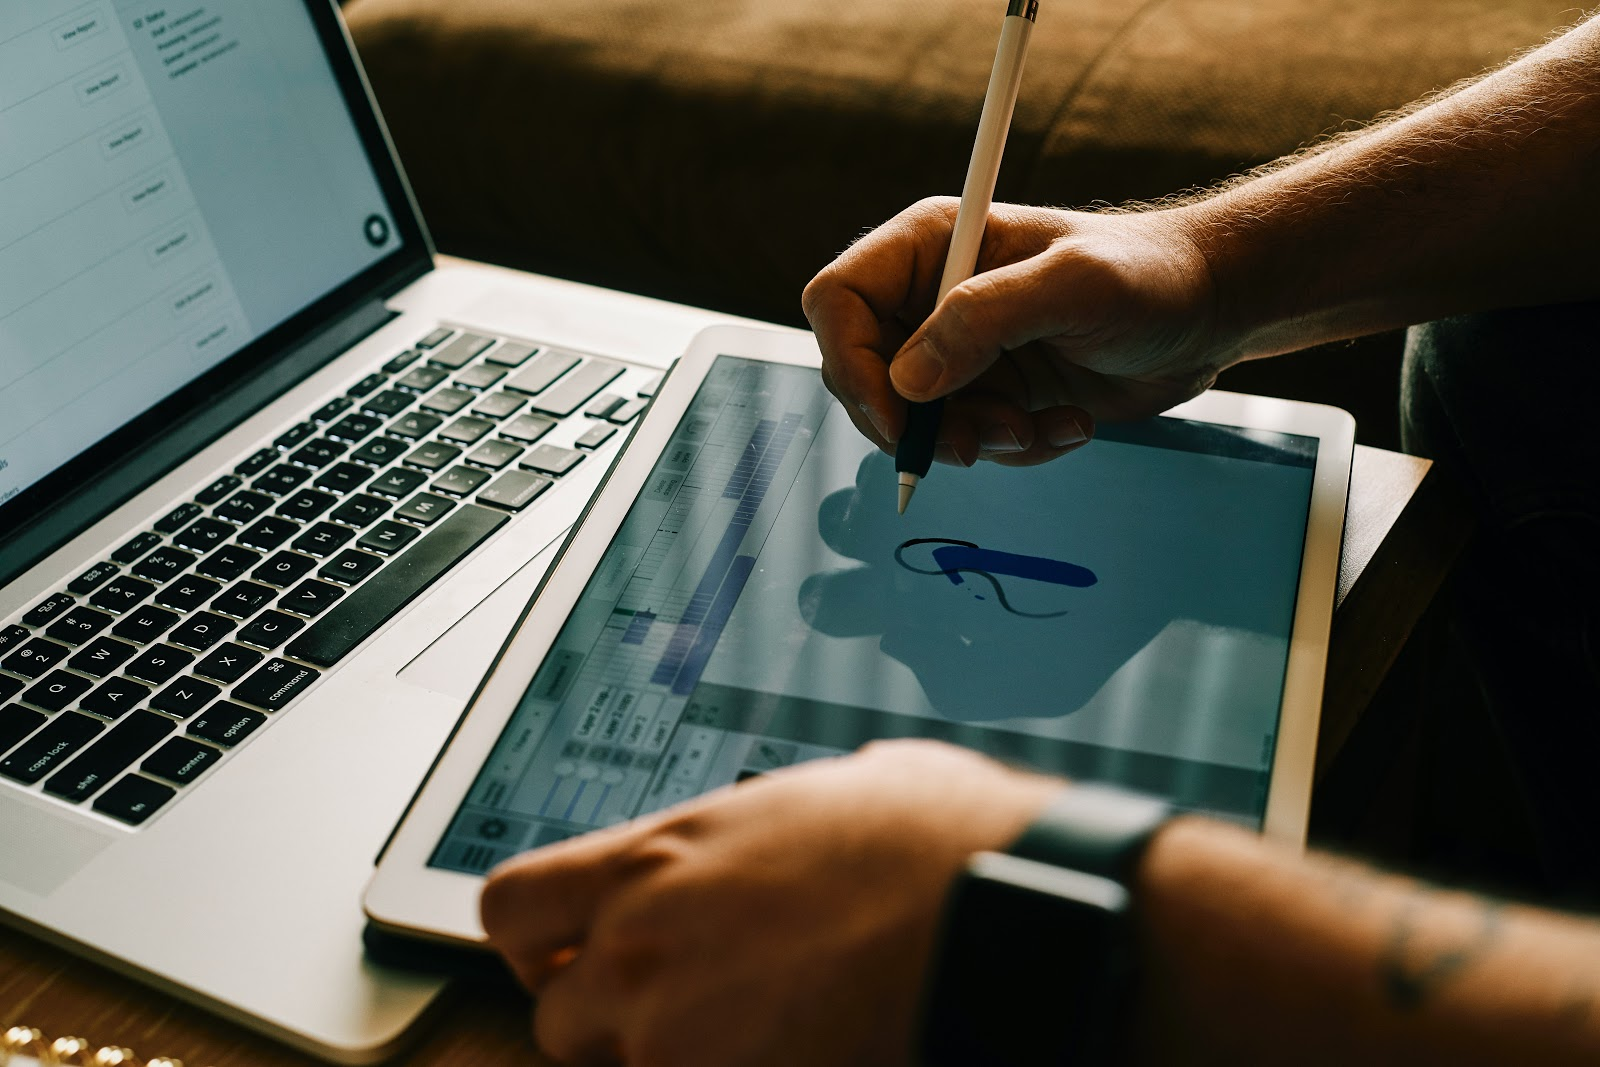 a man animating on a drawing tablet